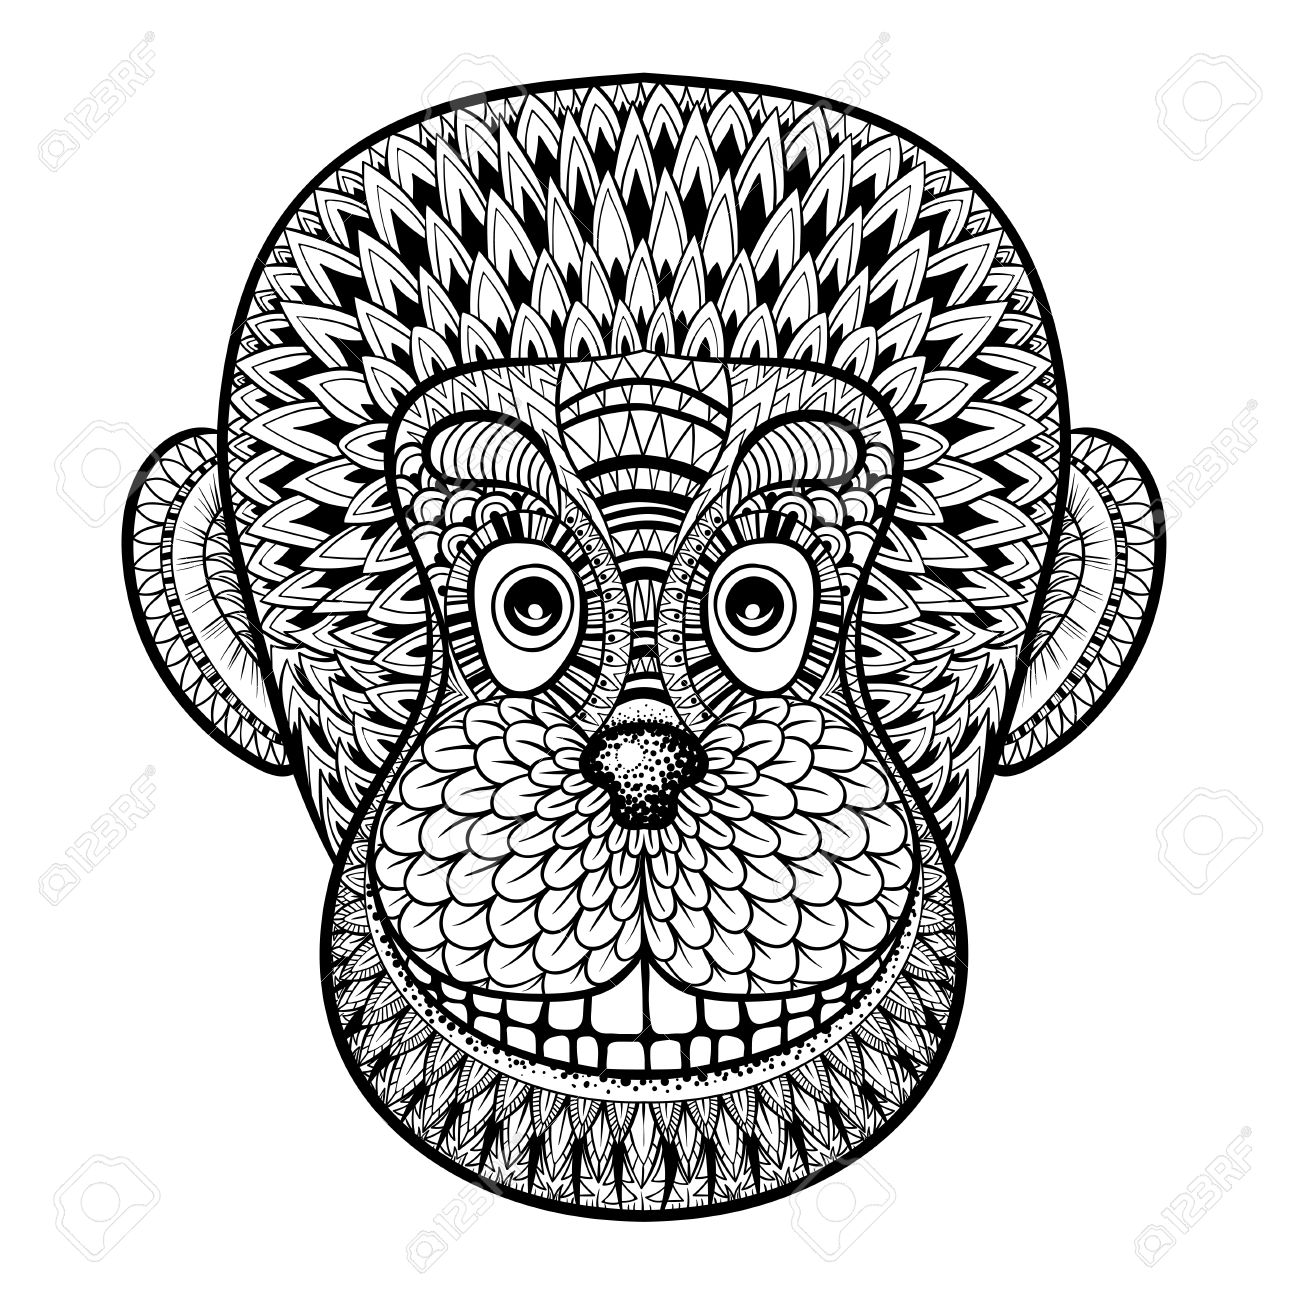 Coloring Pages With Head Of Monkey, Gorilla, Zentangle Illustration ...